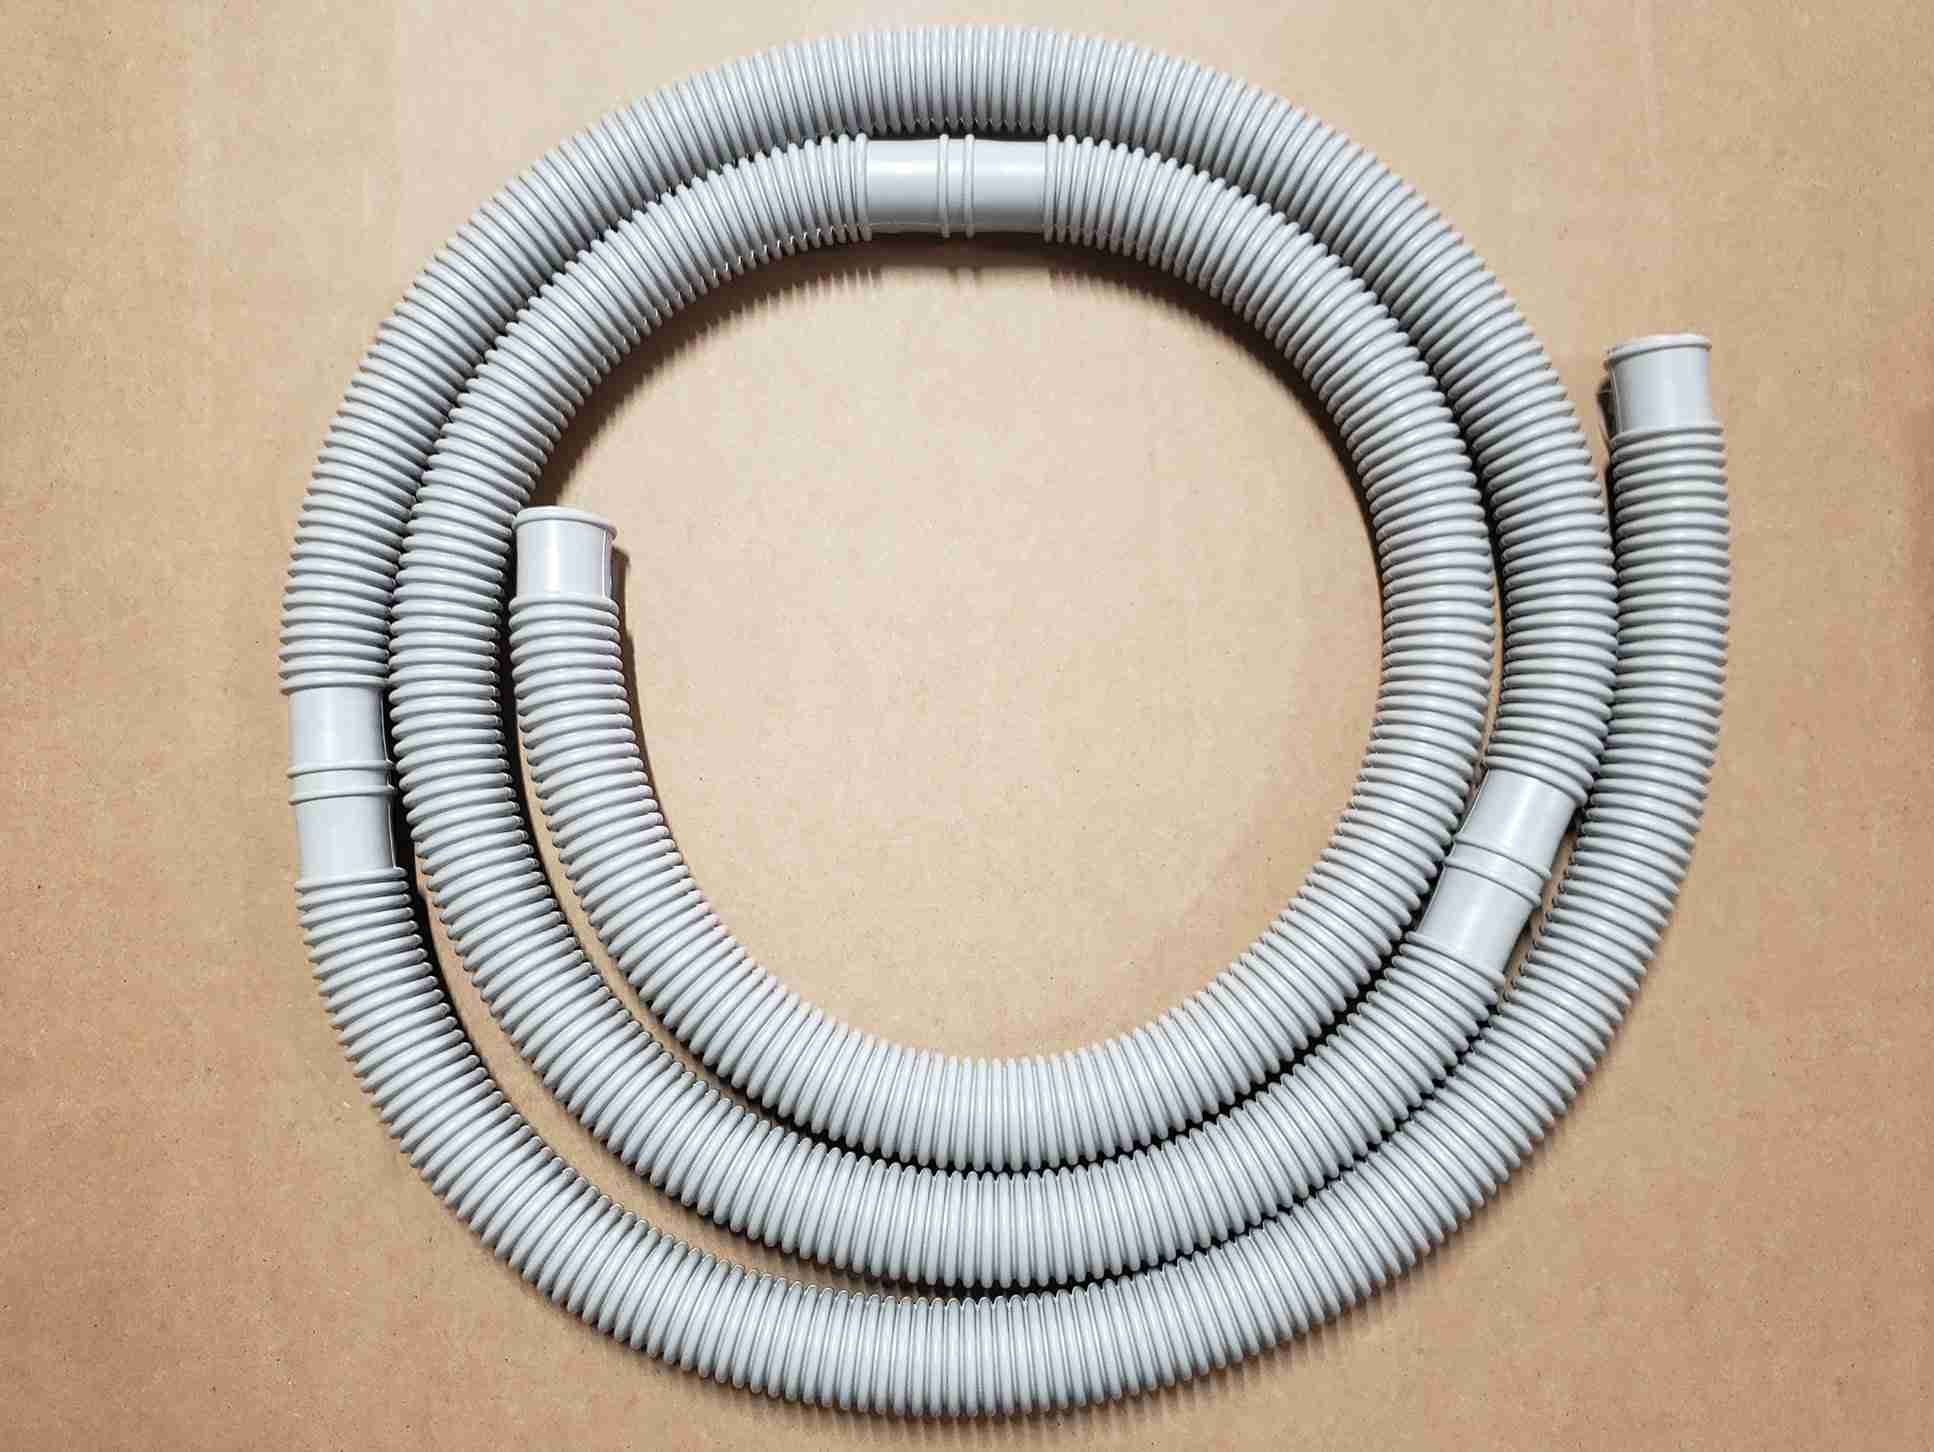 12ft Variant of Flex Hose with Double Cuffs for Above Ground Pool